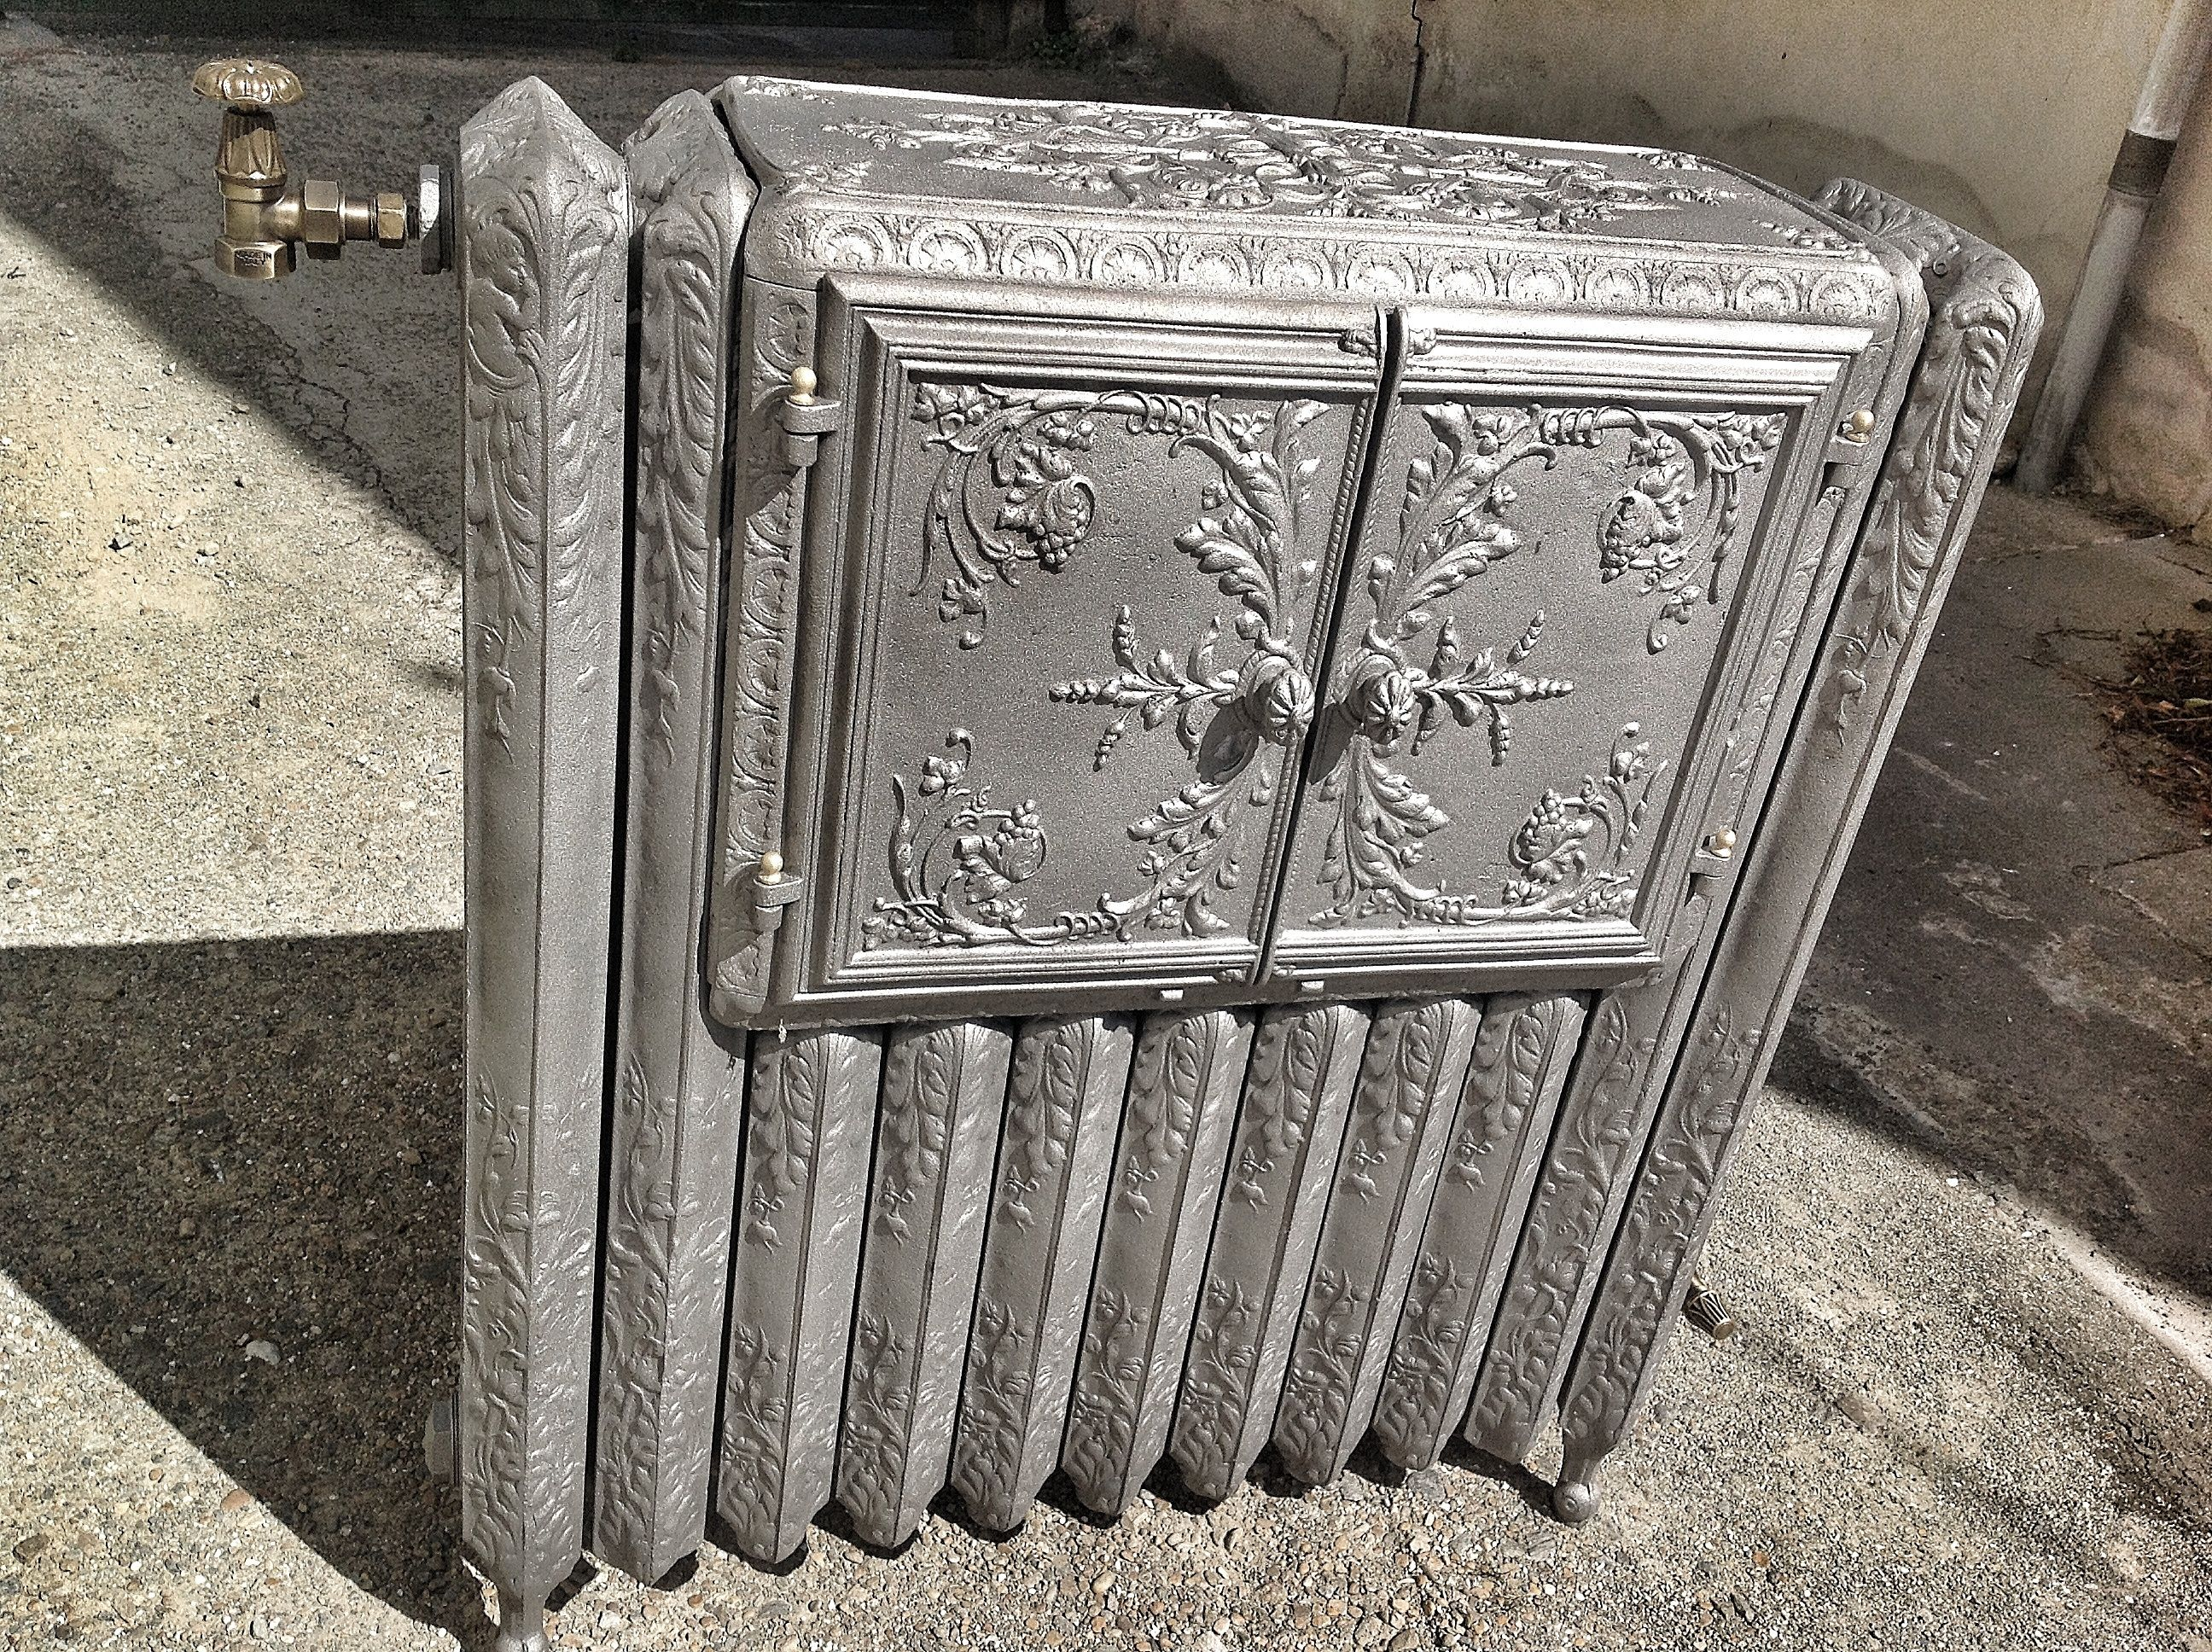 radiateur chauffe plat ancien 1900 cast iron radiators pinterest radiators cast iron. Black Bedroom Furniture Sets. Home Design Ideas